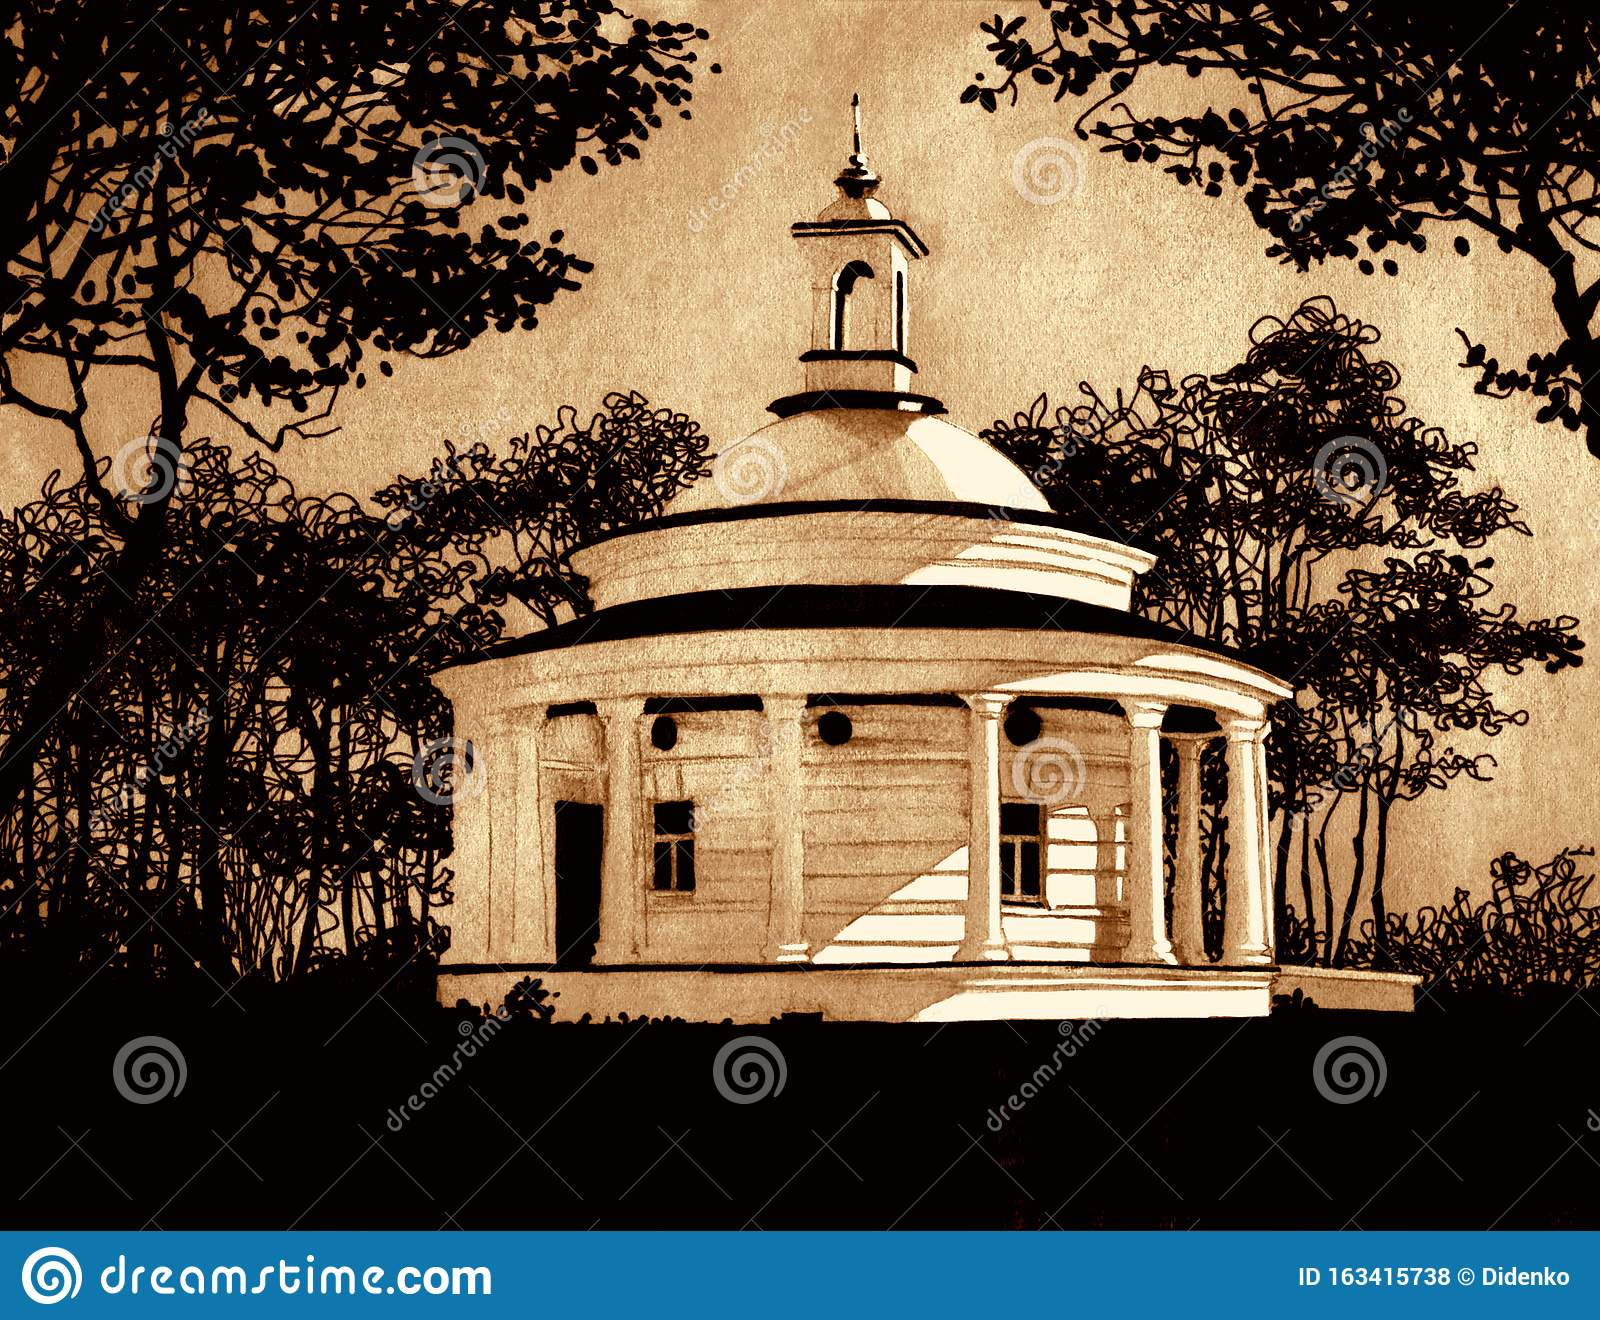 Pencil Sketch Scenery Photos Free Royalty Free Stock Photos From Dreamstime How to draw scenery of light and shadow by pencil sketch. https www dreamstime com drawing pen pencil askold s grave kiev st prince warrior askold s obsequie royal place scene kyiv black ink pen image163415738